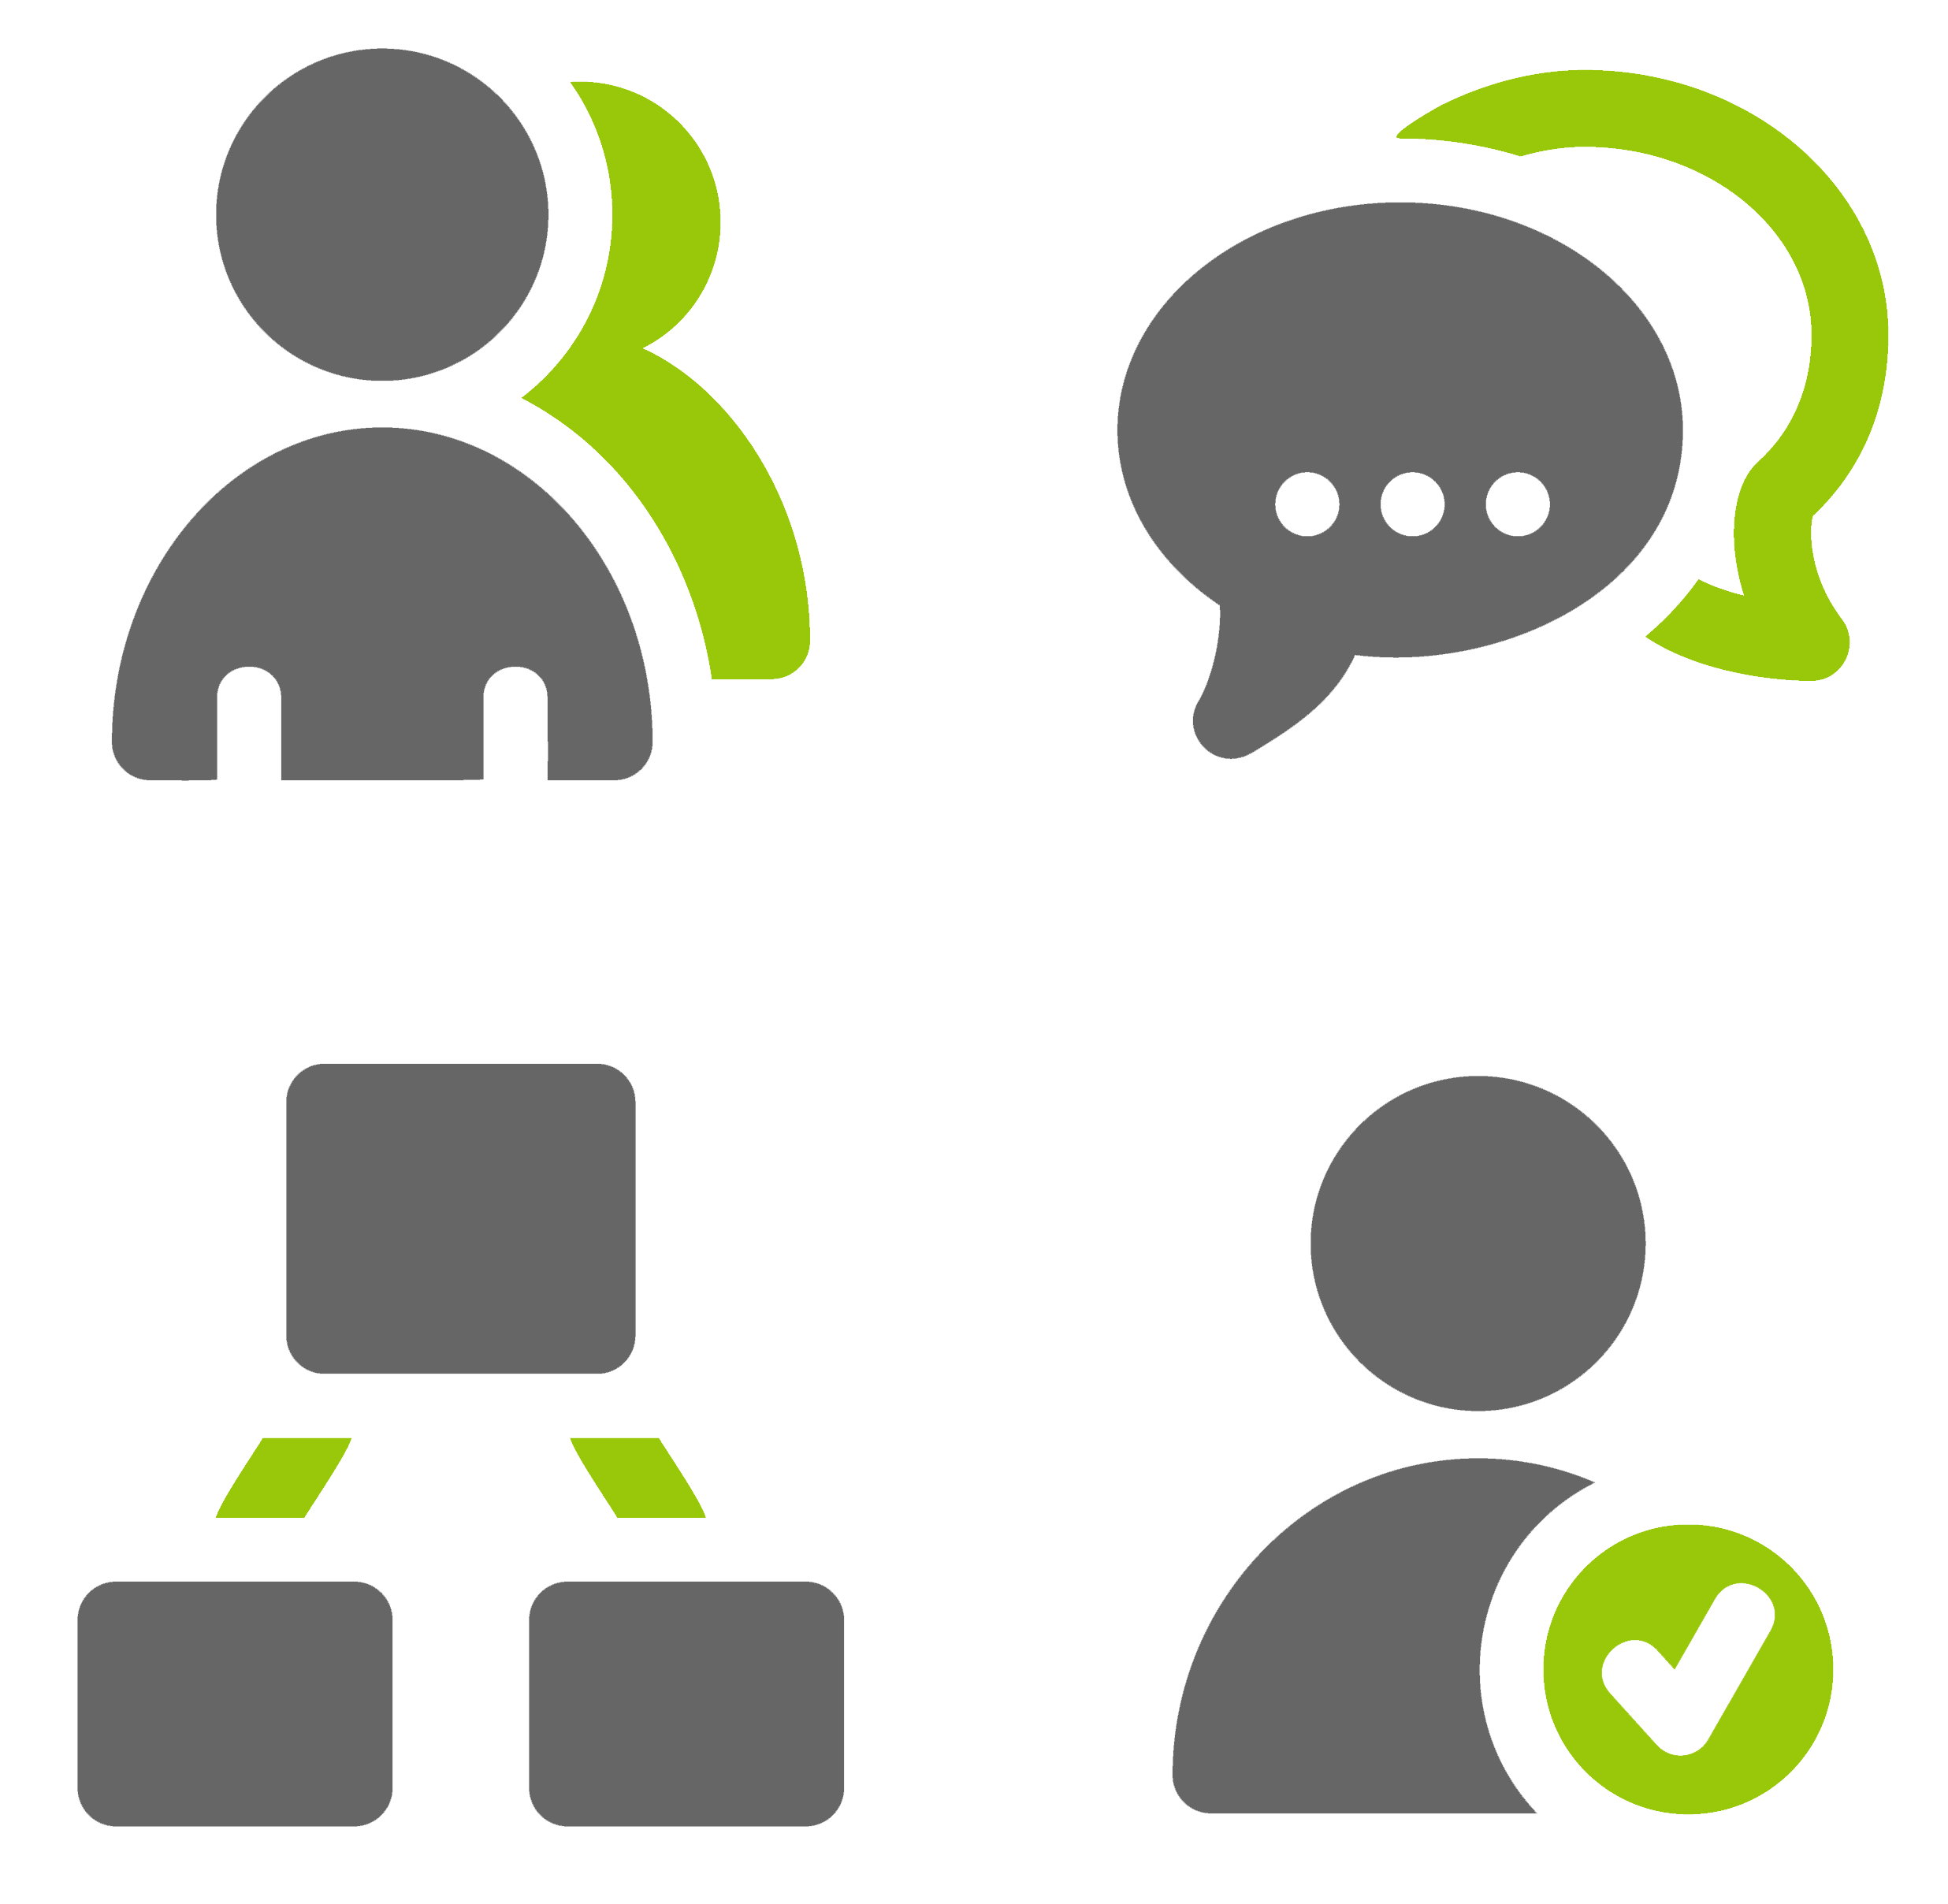 Customer service clipart and graphics jpg download Computer Icons Customer experience Customer Service Technical ... jpg download